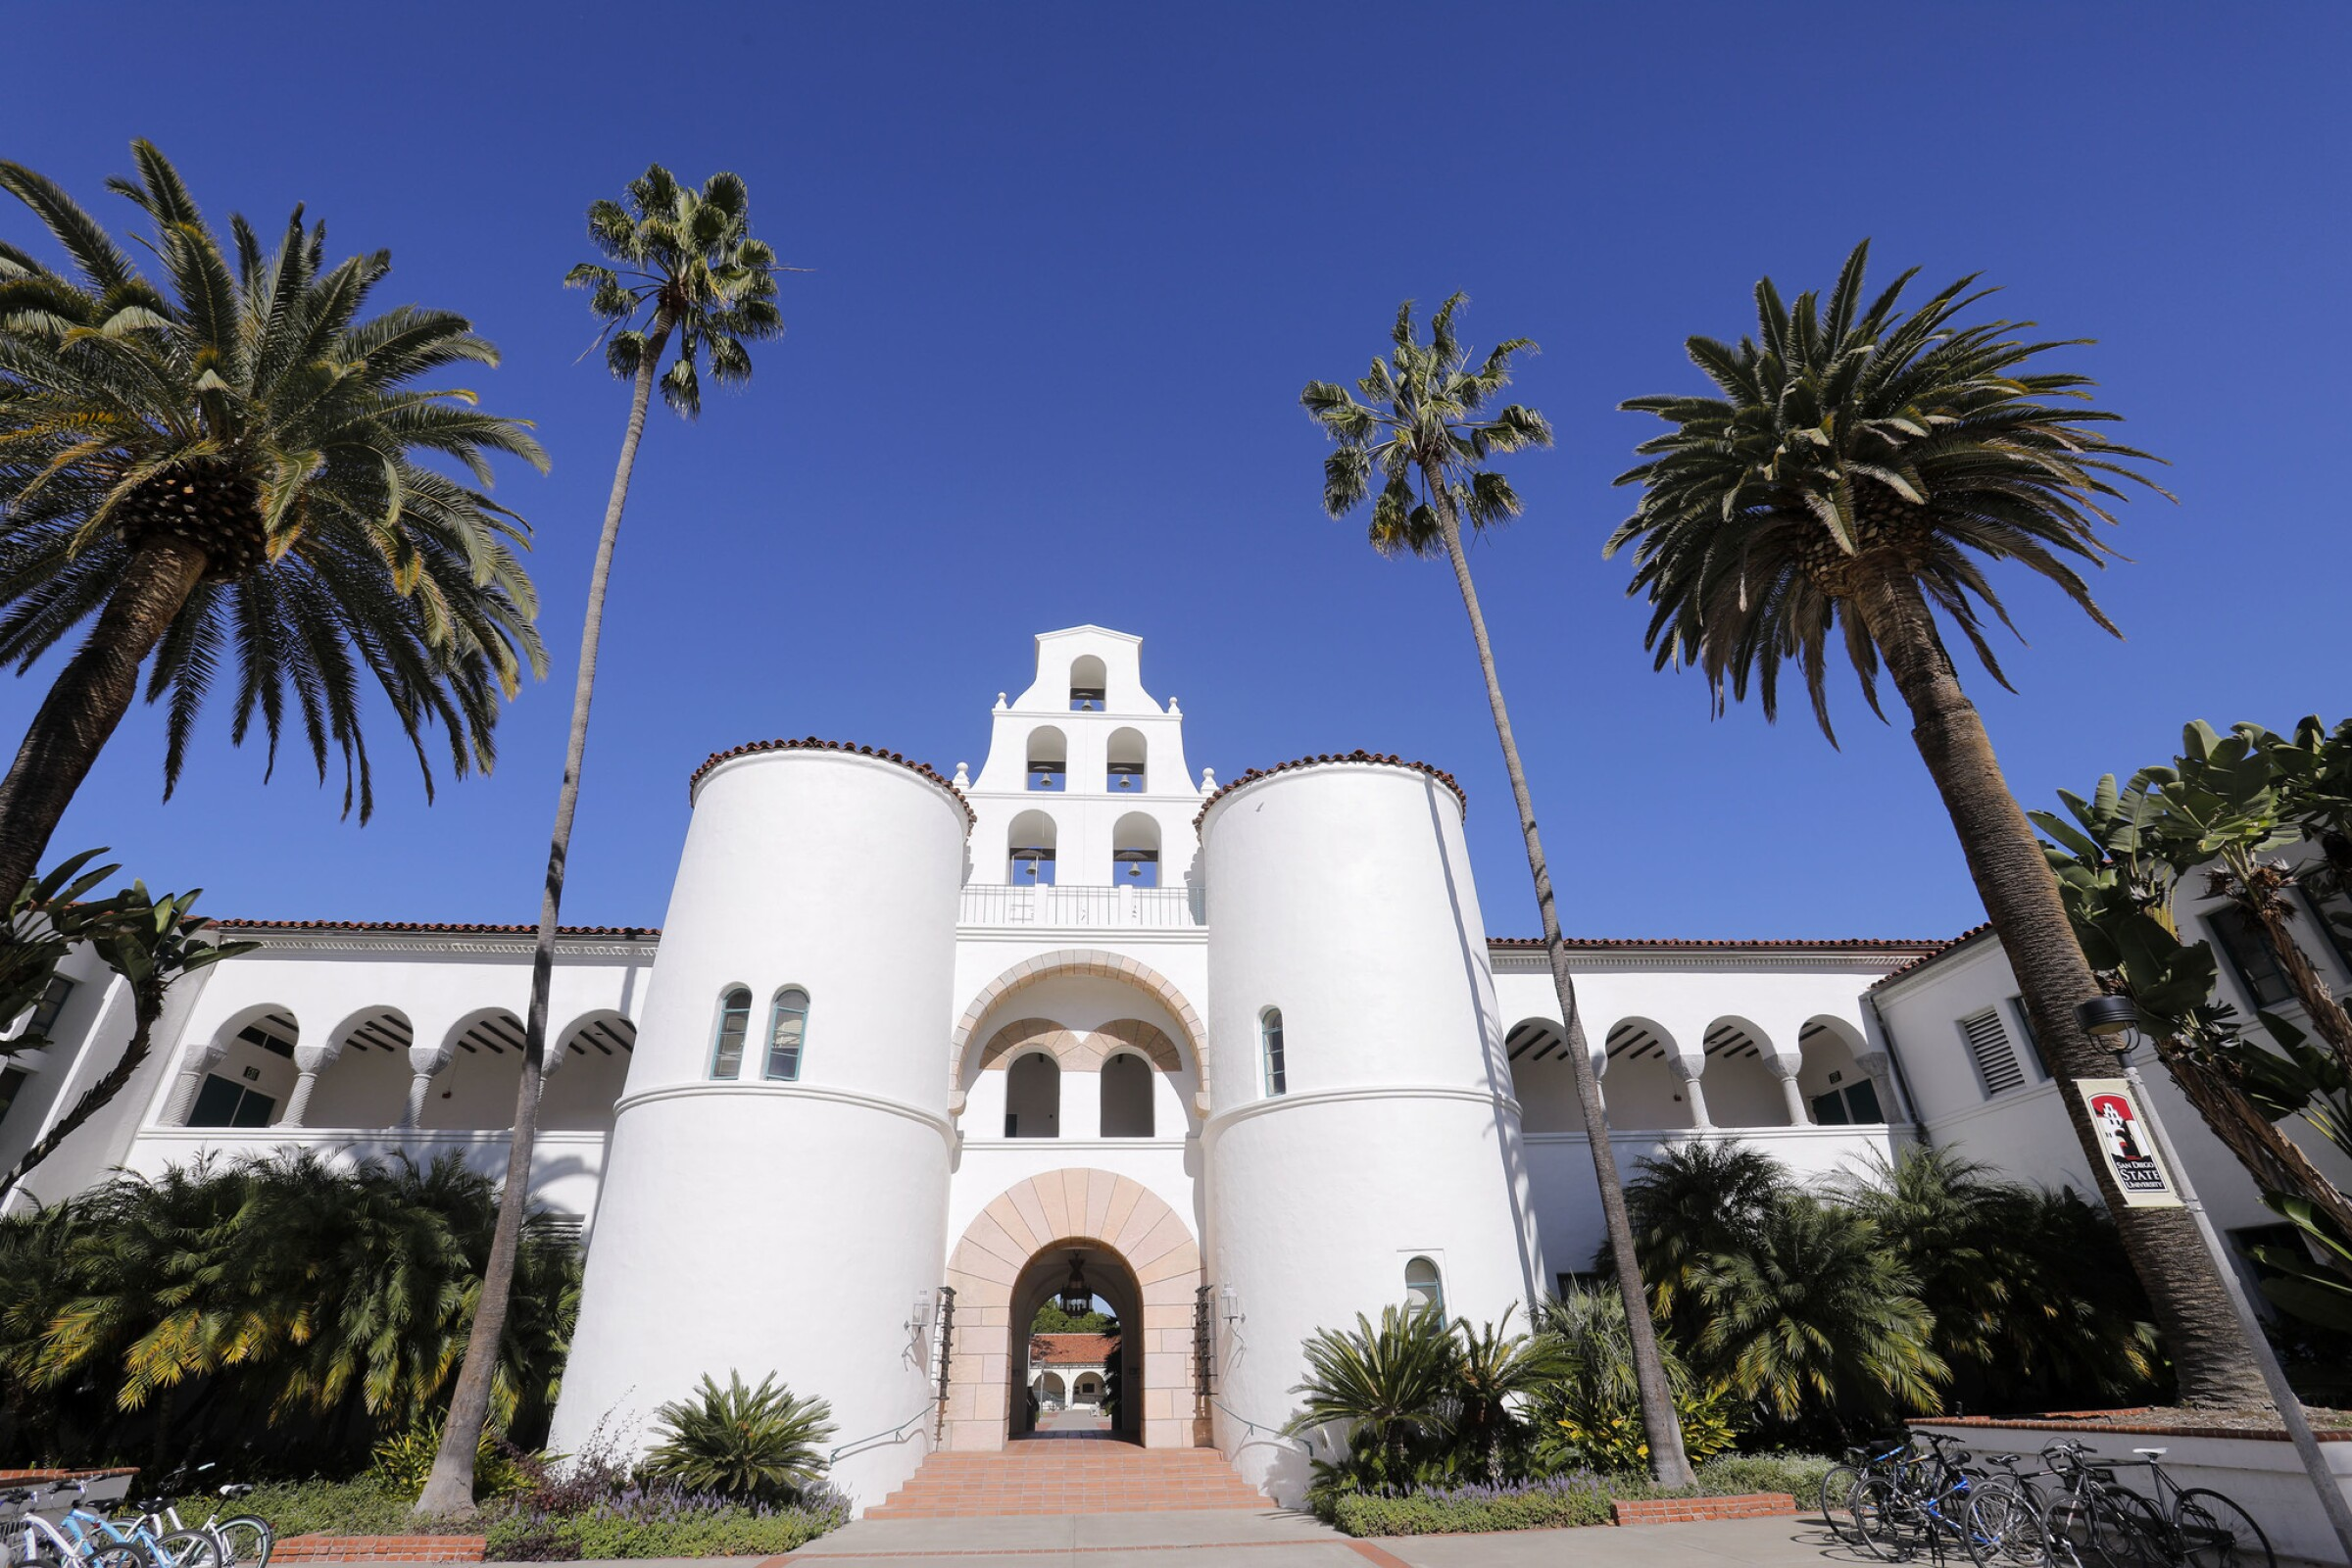 The iconic Hepner Hall on the campus of San Diego State University was completed in 1931.